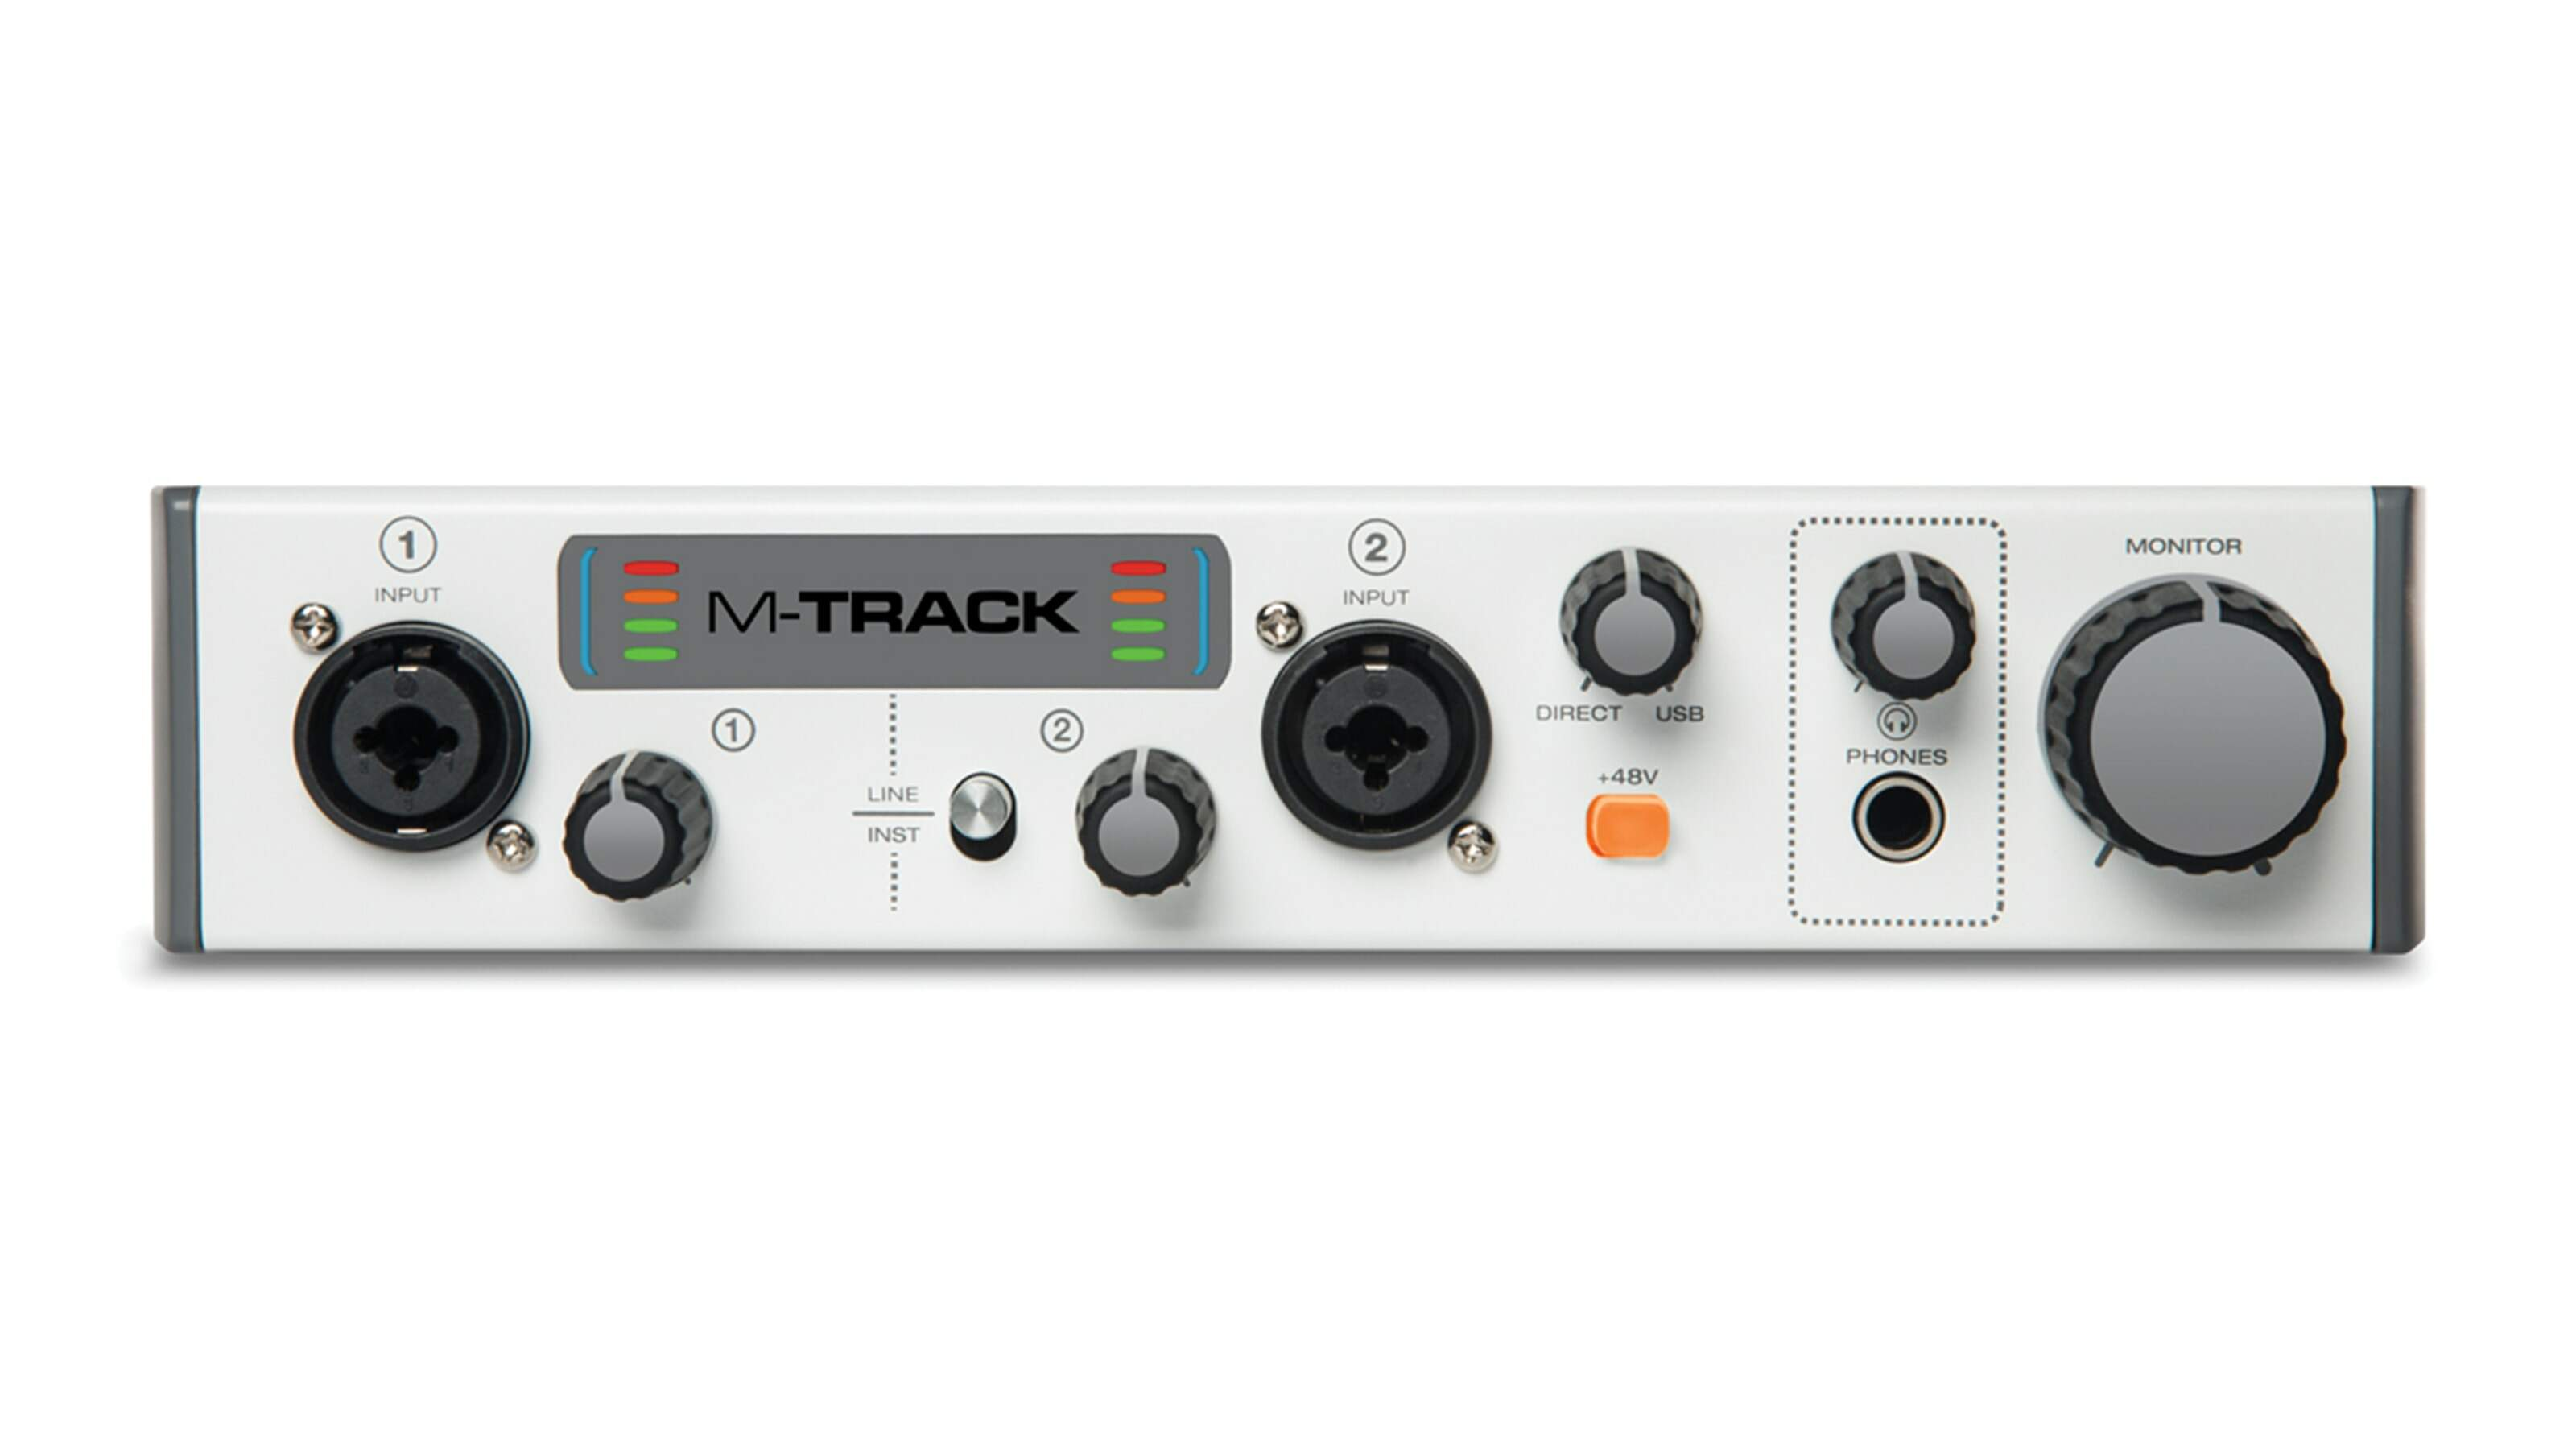 Interface M-audio Mtrackii